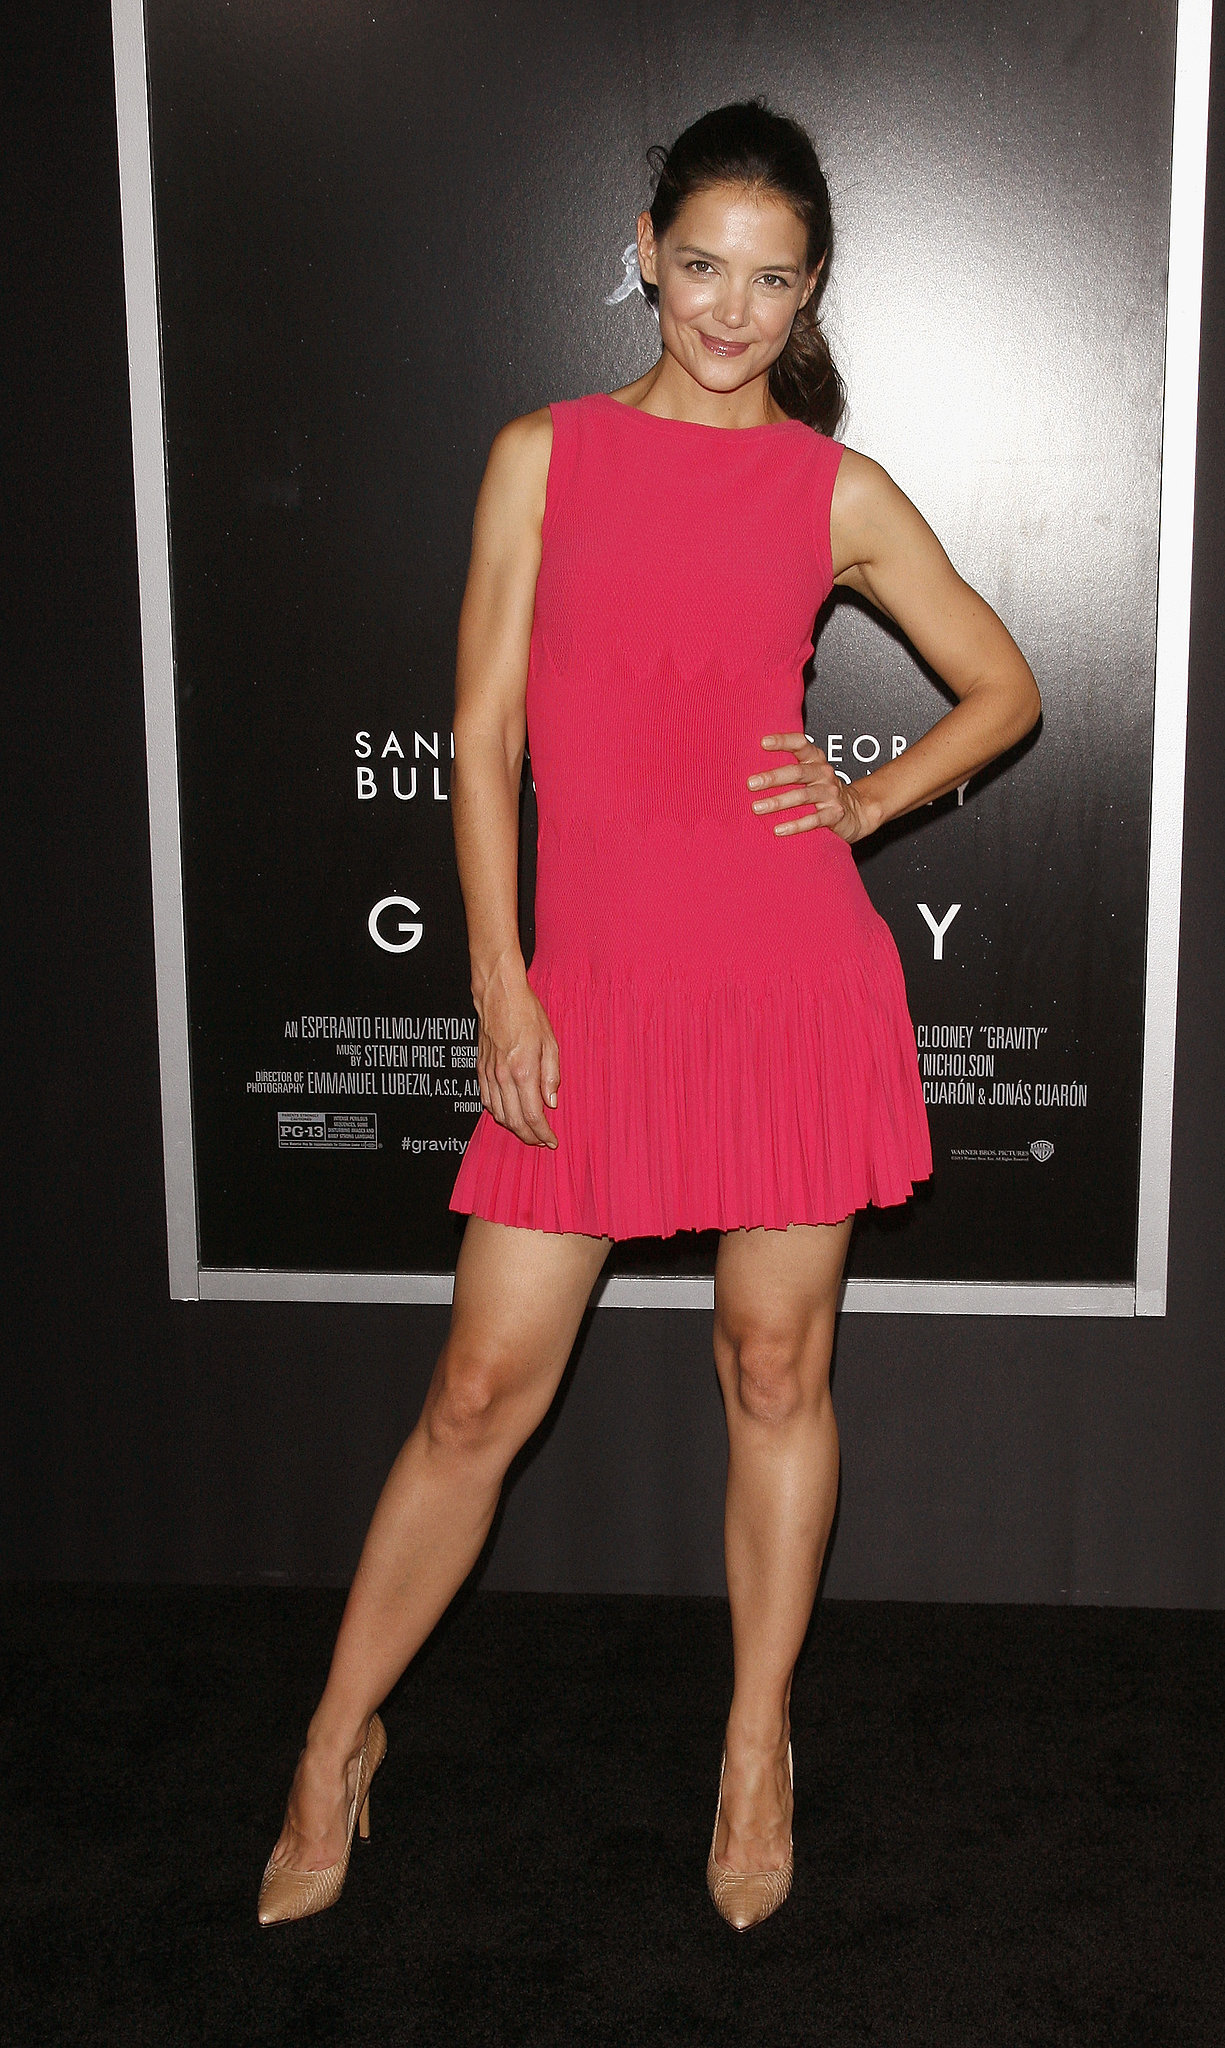 For the NYC premiere of Gravity, Katie Holmes popped in a bright pink pleated minidress by Azzedine Alaïa. Where to Wear: